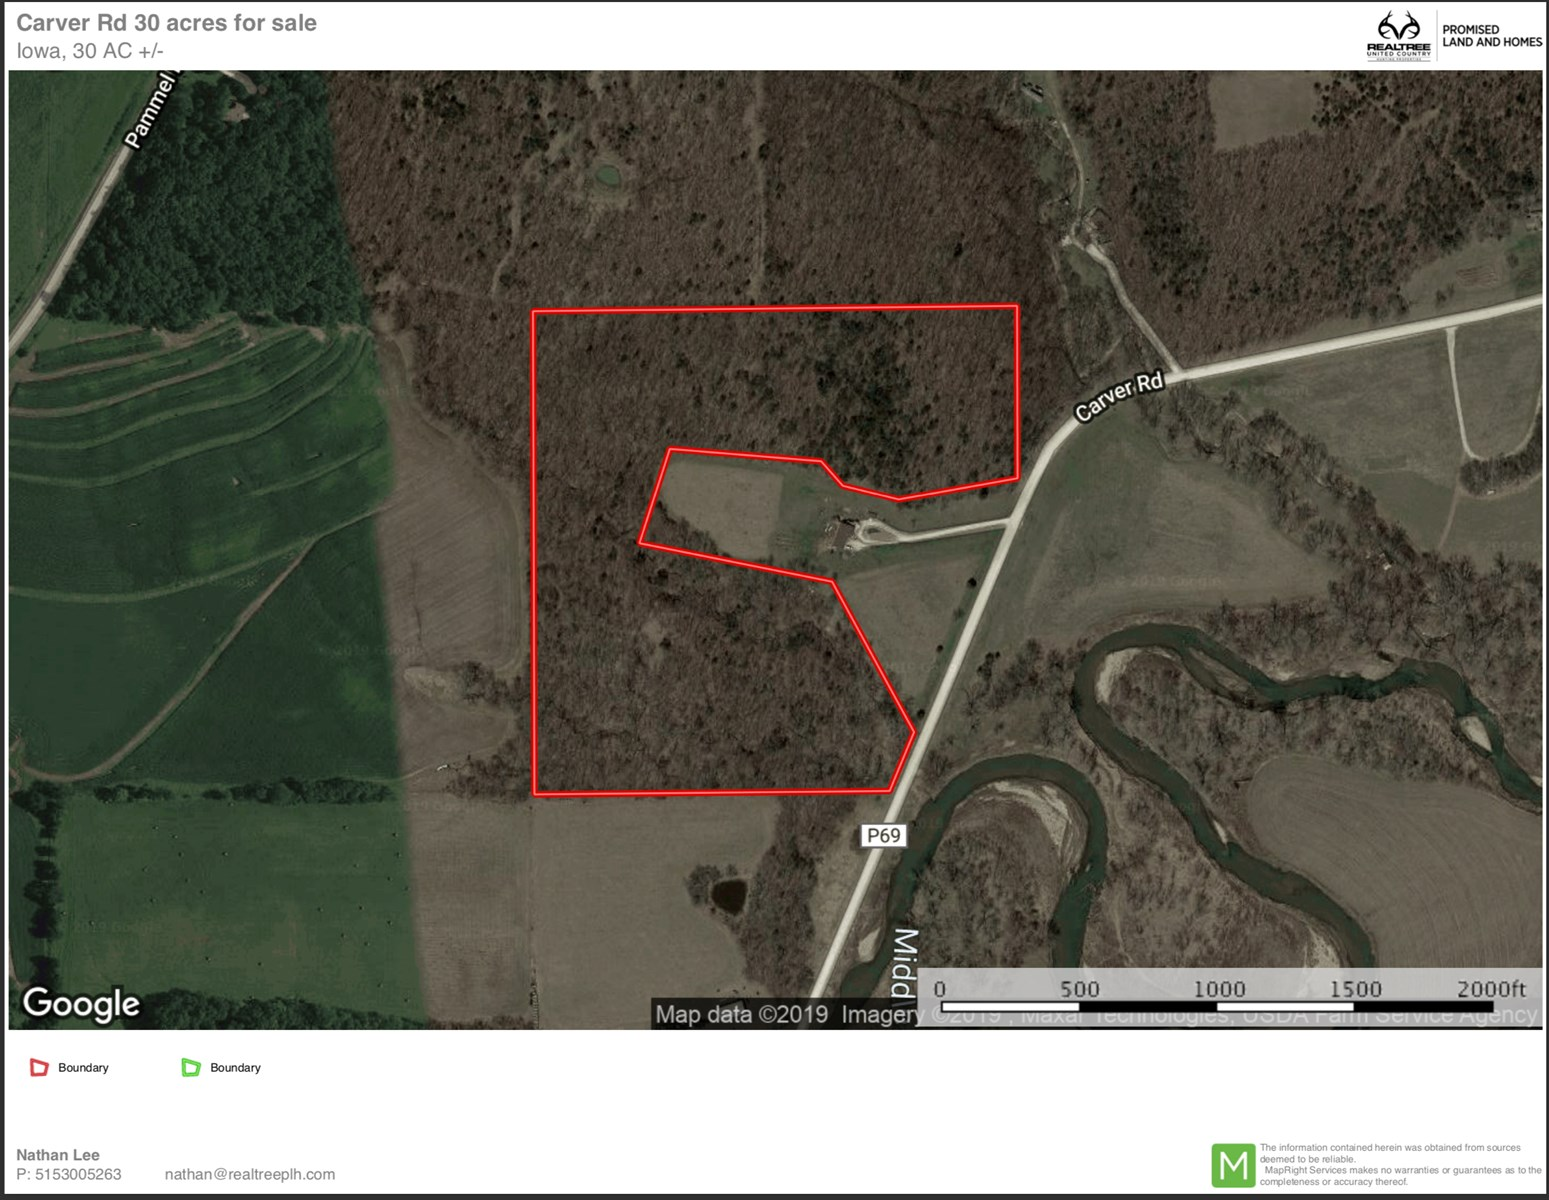 Land for sale in Madison Co., Iowa